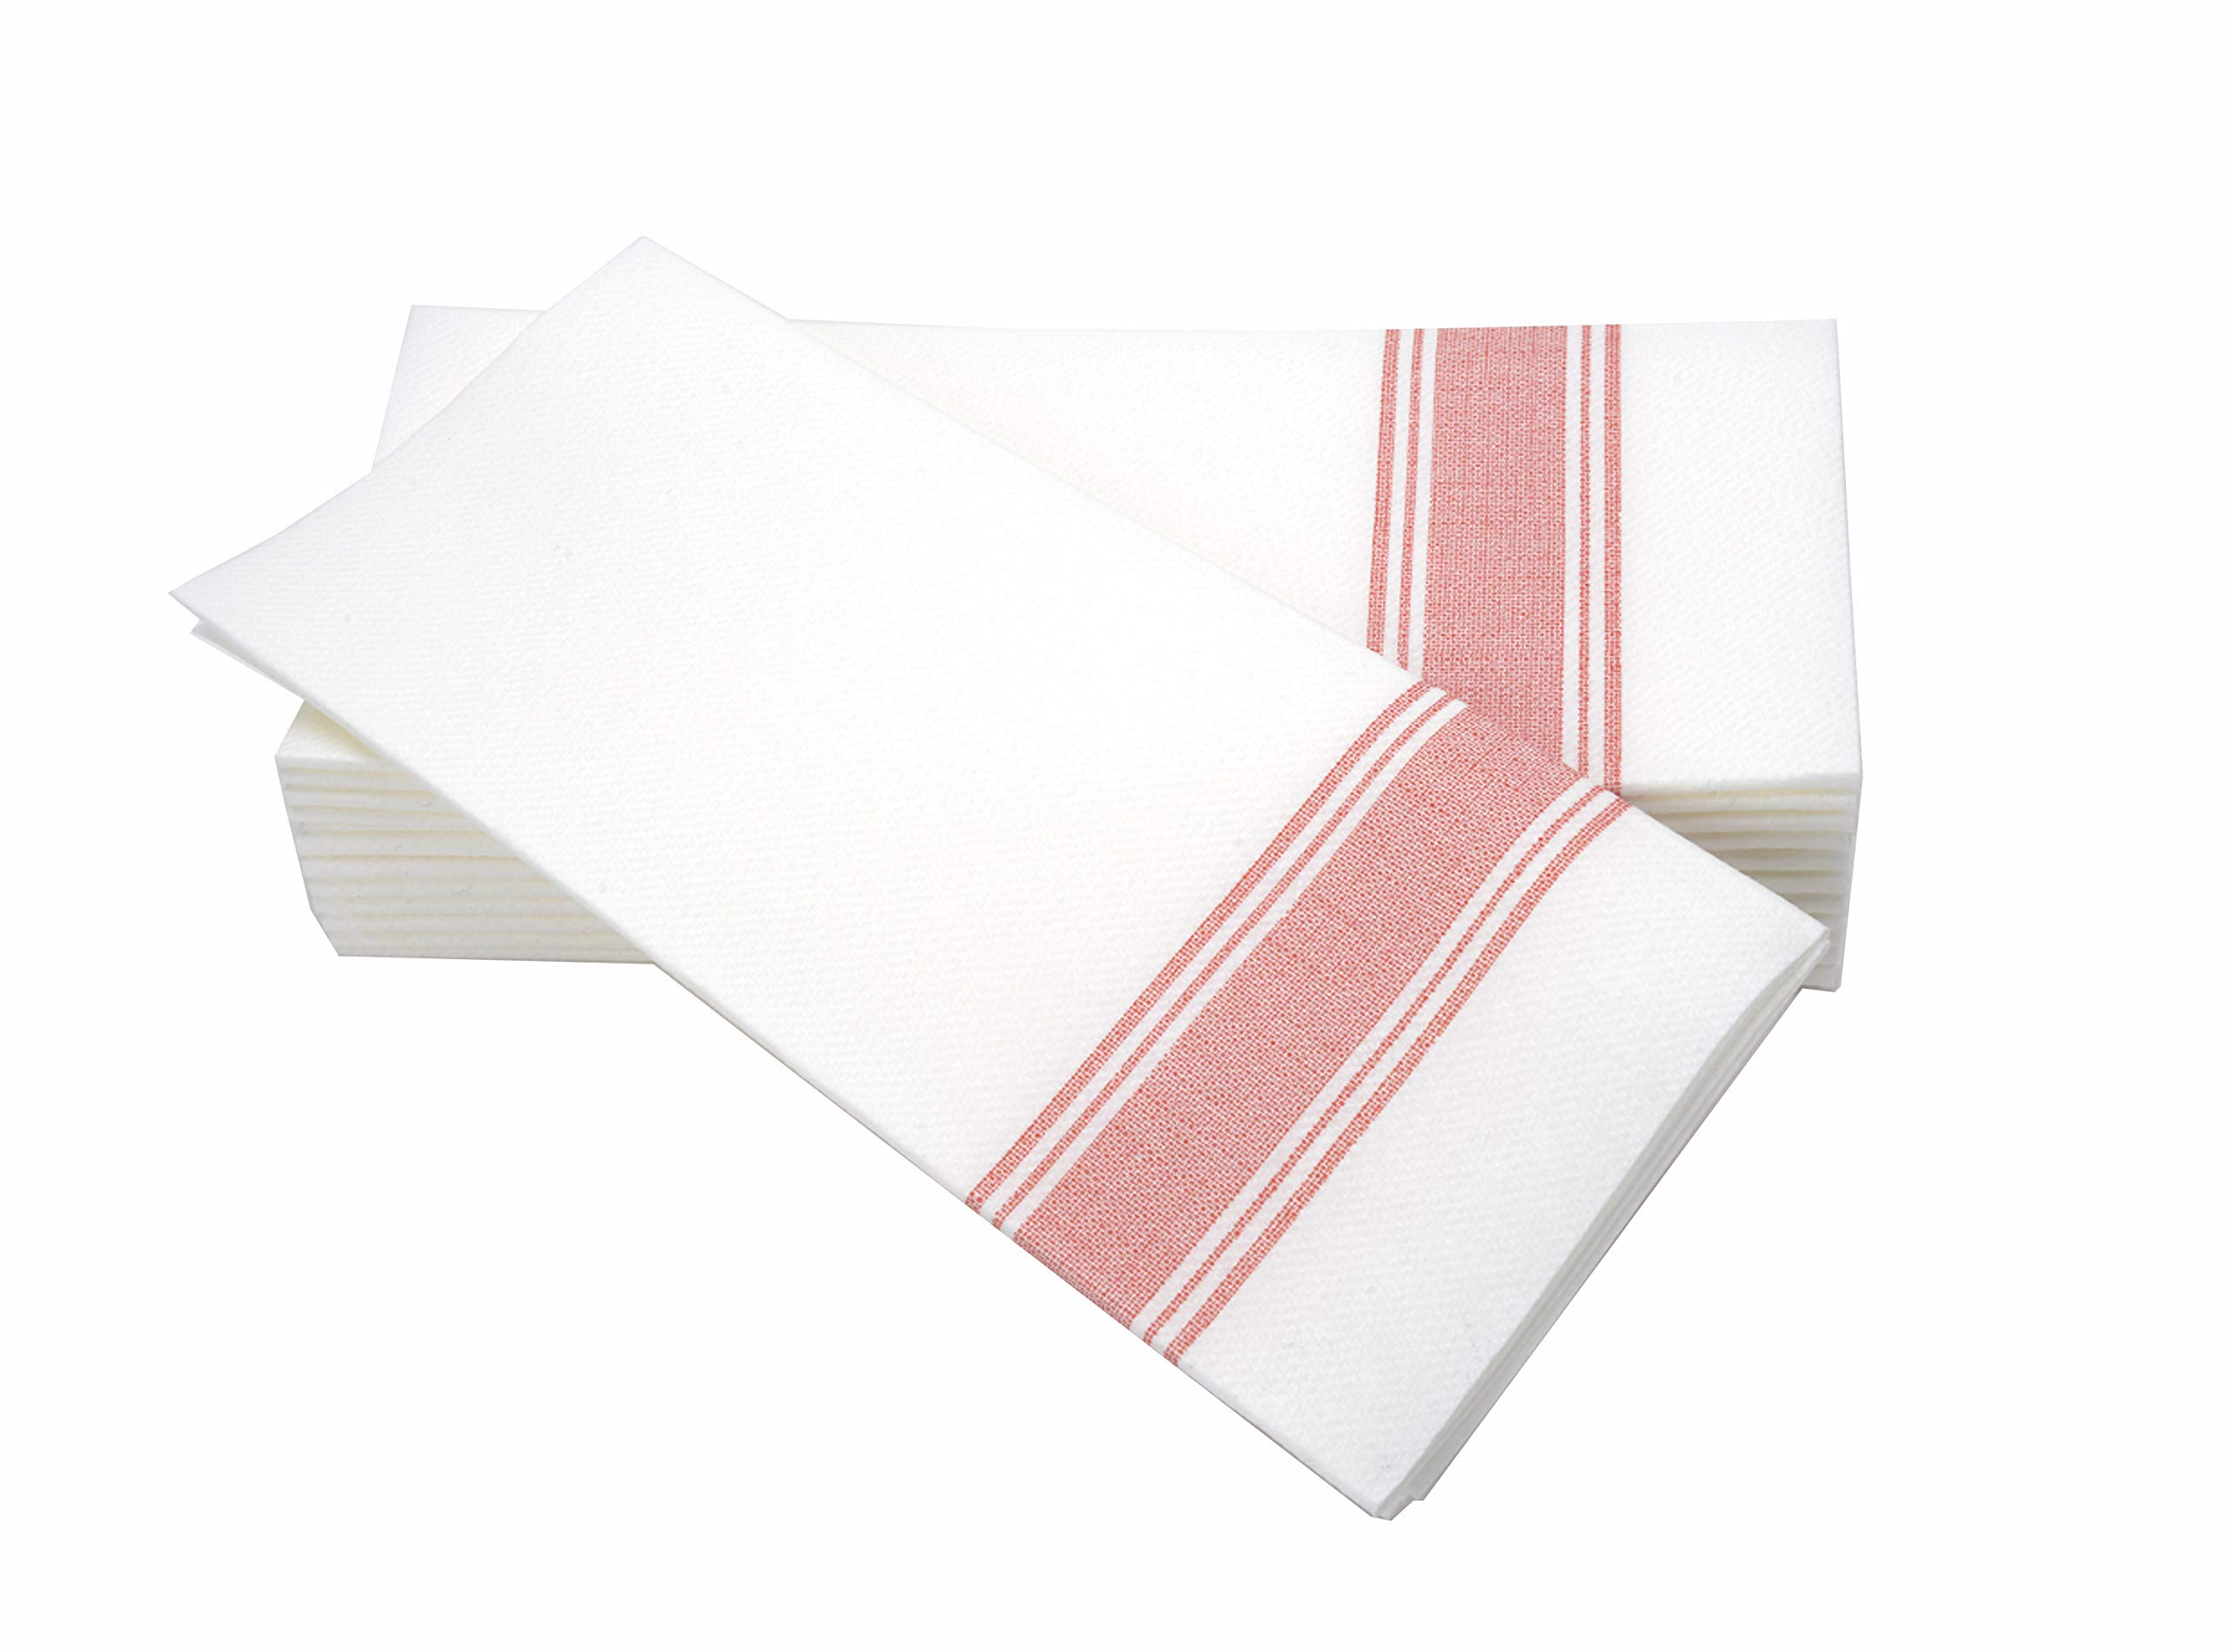 "Simulinen Dinner Napkins –RED STRIPE BISTRO– Decorative Cloth Like & Disposable Bistro Napkins – Soft, Absorbent & Durable (19""x17"" – Box 60)"